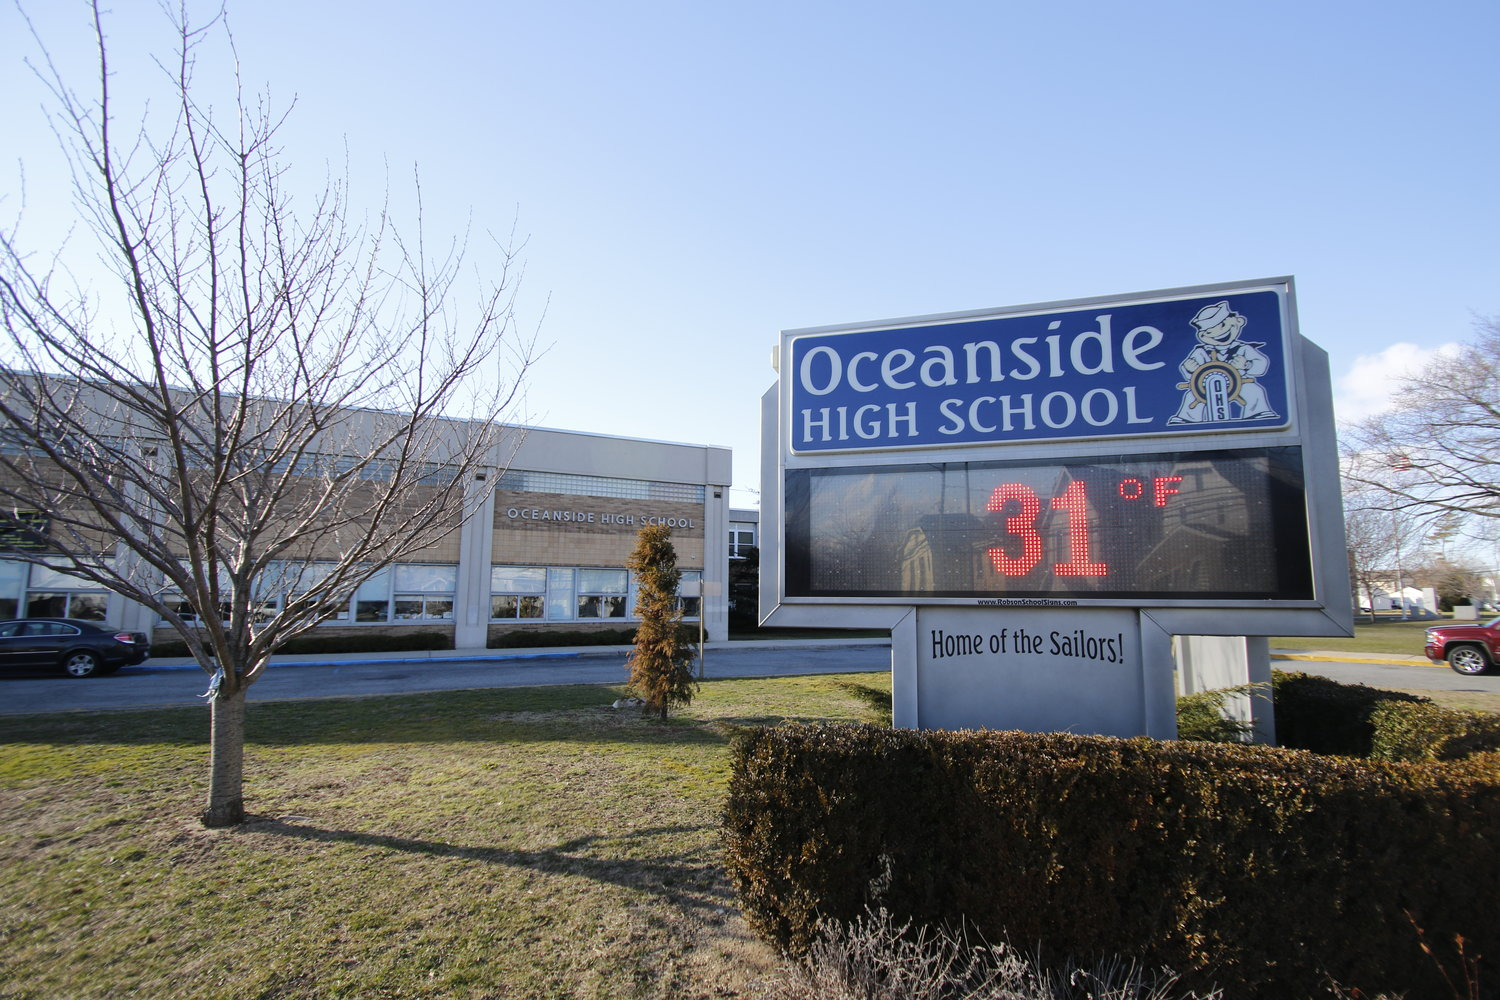 Oceanside School District's budget vote will include a separate ballot measure, in which voters will decide on using money from a capital reserve fund for artificlal-turf field repairs and interior door replacements at the high school.